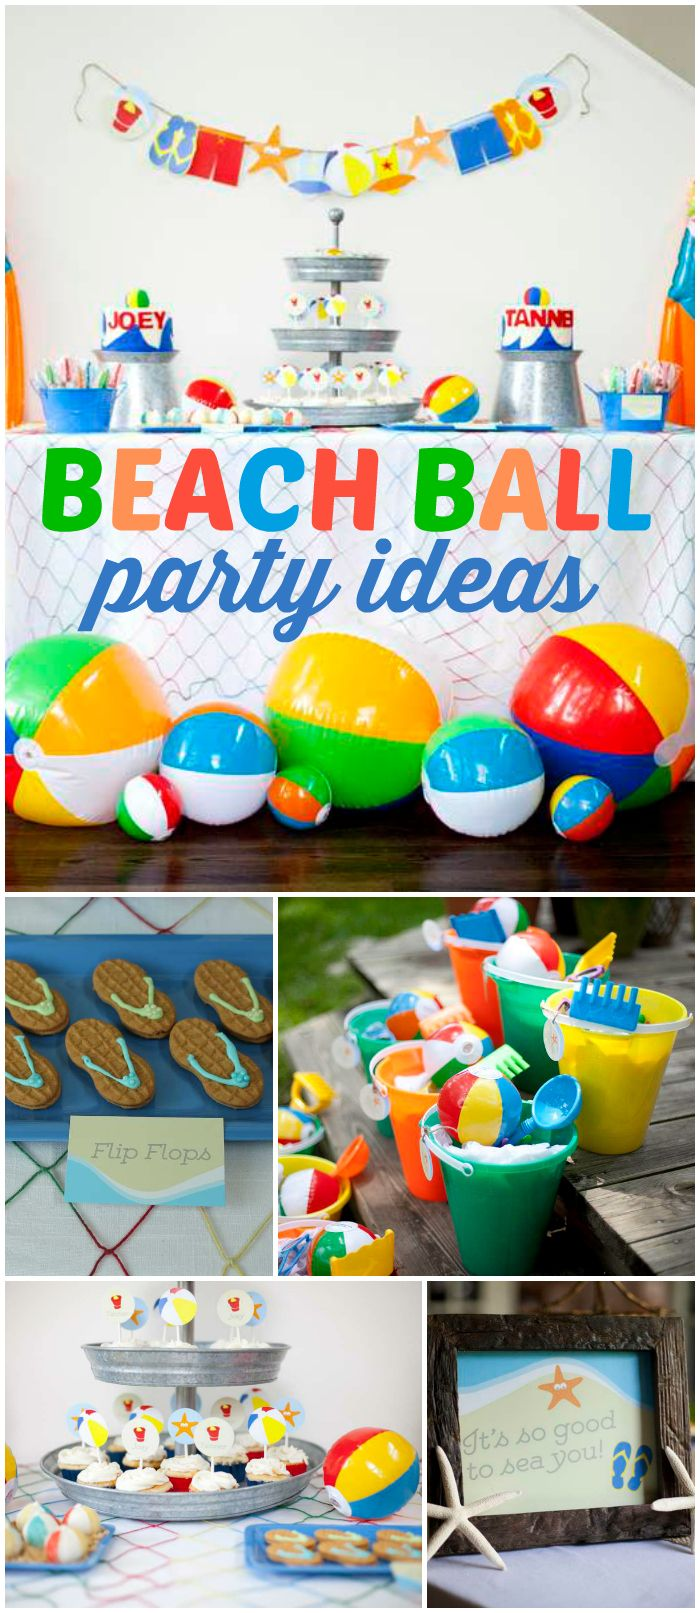 Kids Pool Party Ideas pool party kids pesquisa google Beach Birthday Its A Beach Bash2nd Birthday Party For Joey Tanner